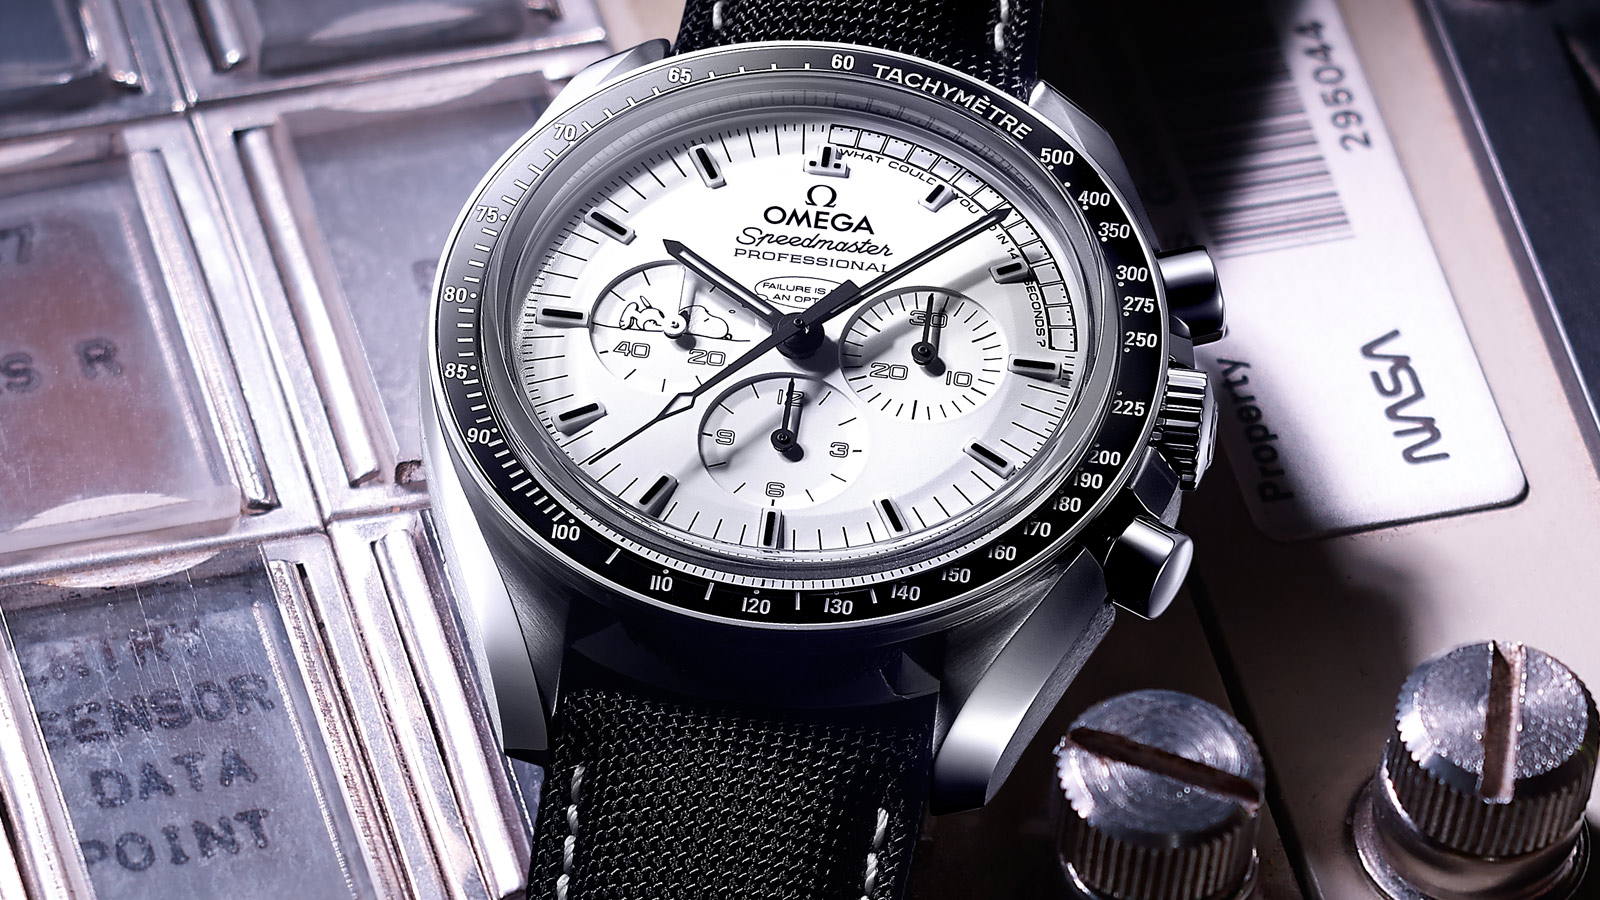 Speedmaster Moonwatch Moonwatch Anniversary Limited Series - 311.32.42.30.04.003 - Anzeigen 4